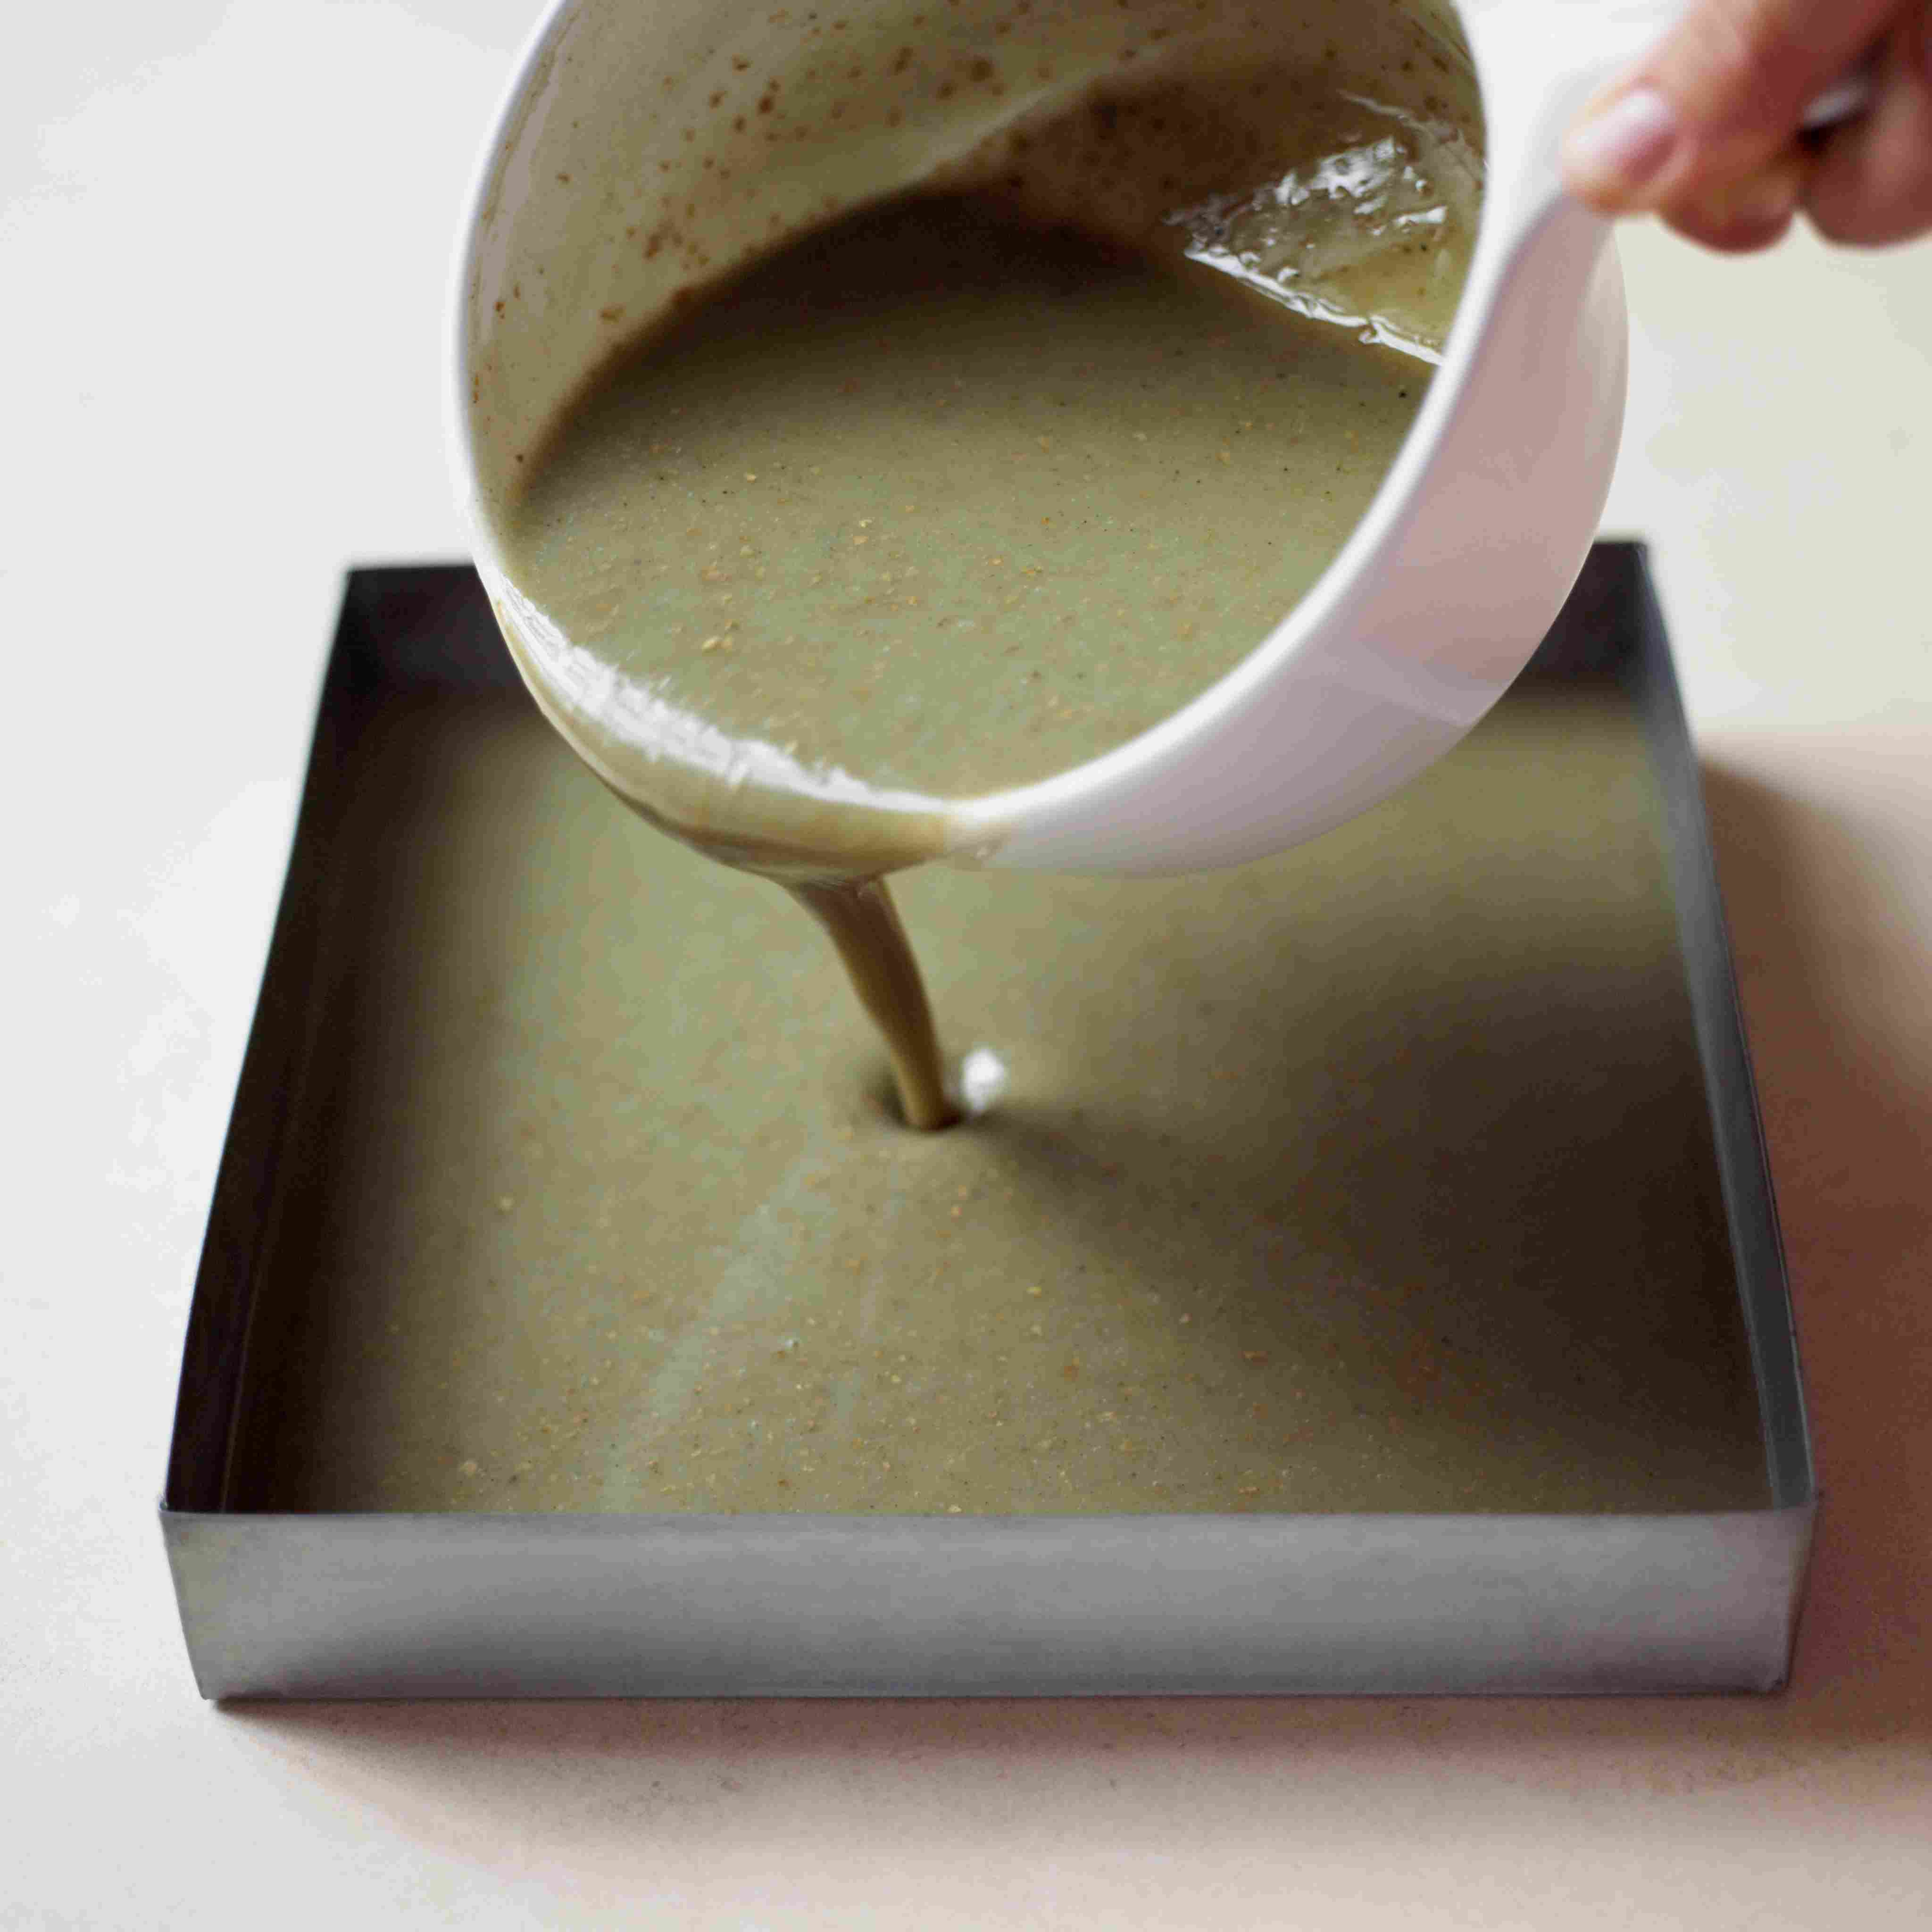 Pouring melted soap mixture into square container